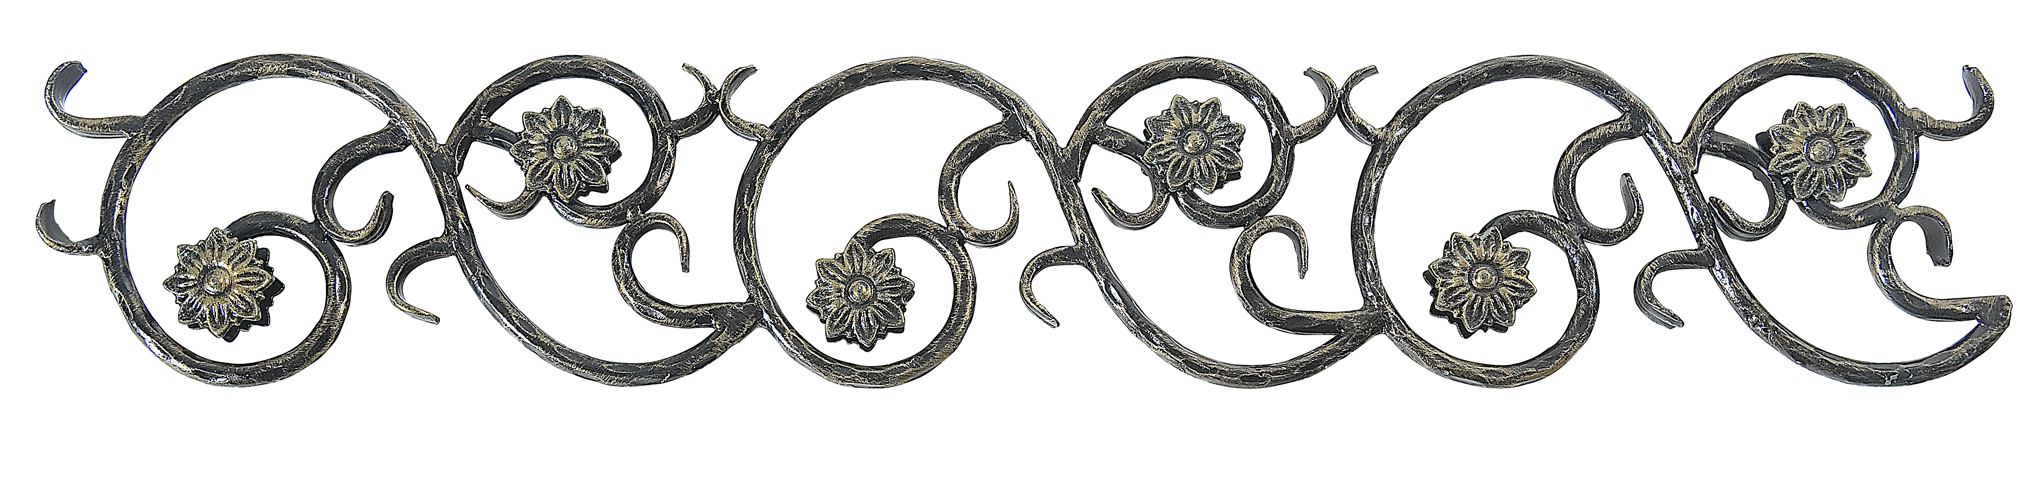 Kovářský ornament H 970 x L 170 mm,12 mm